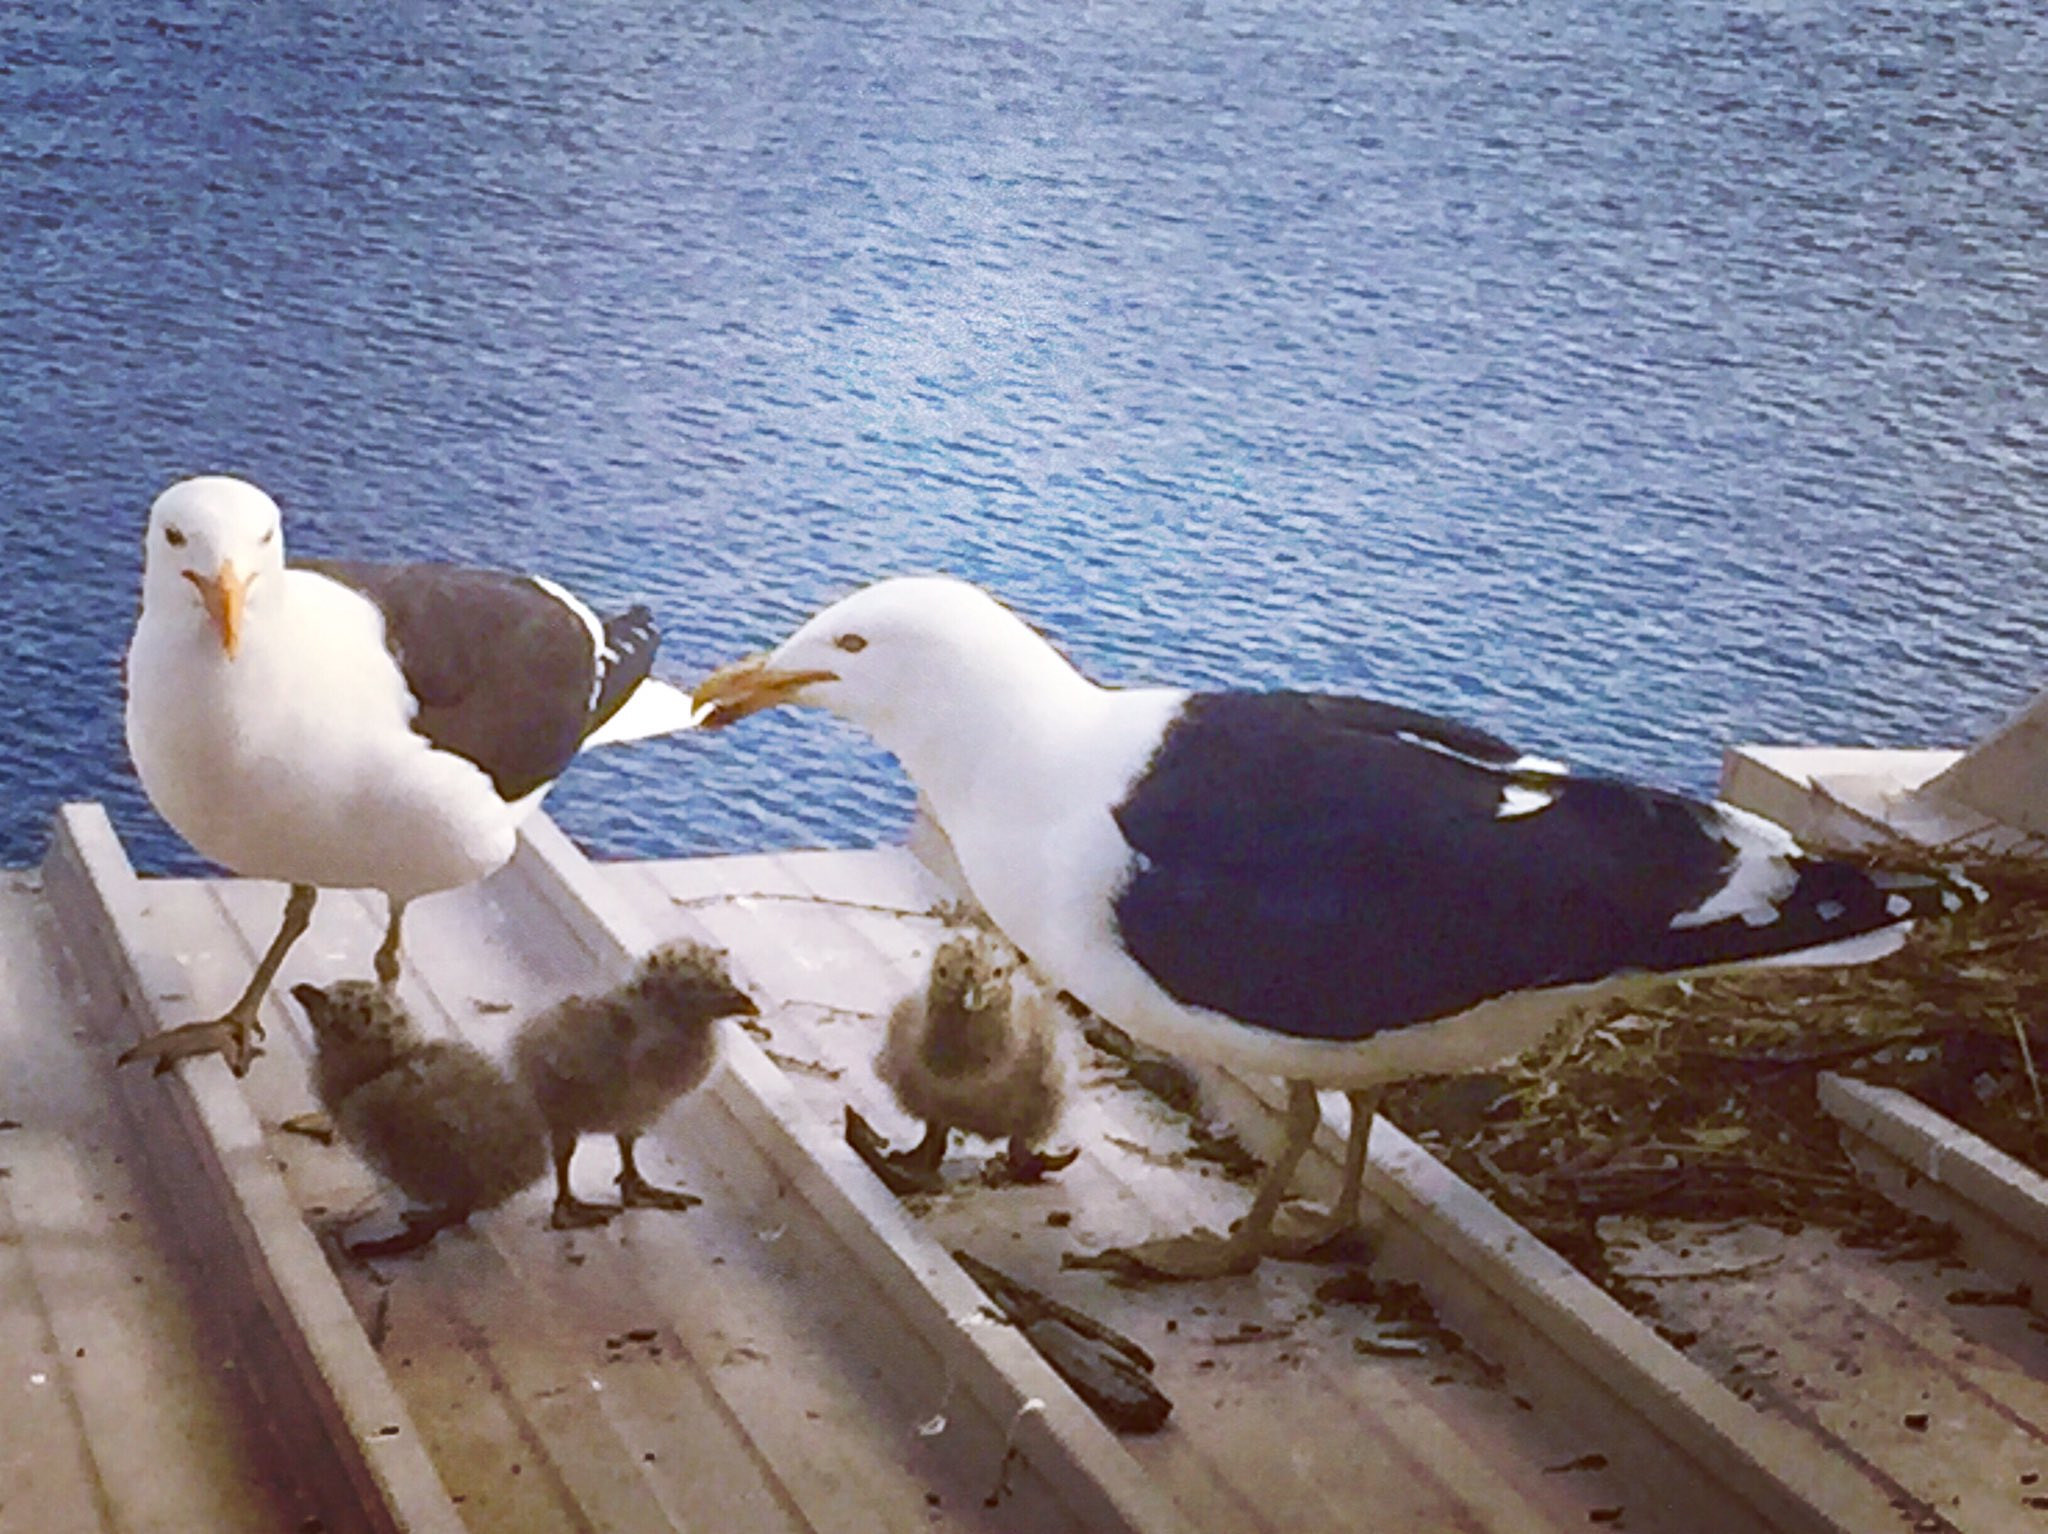 Kelp gulls feed with their chicks on a roof with water in the background